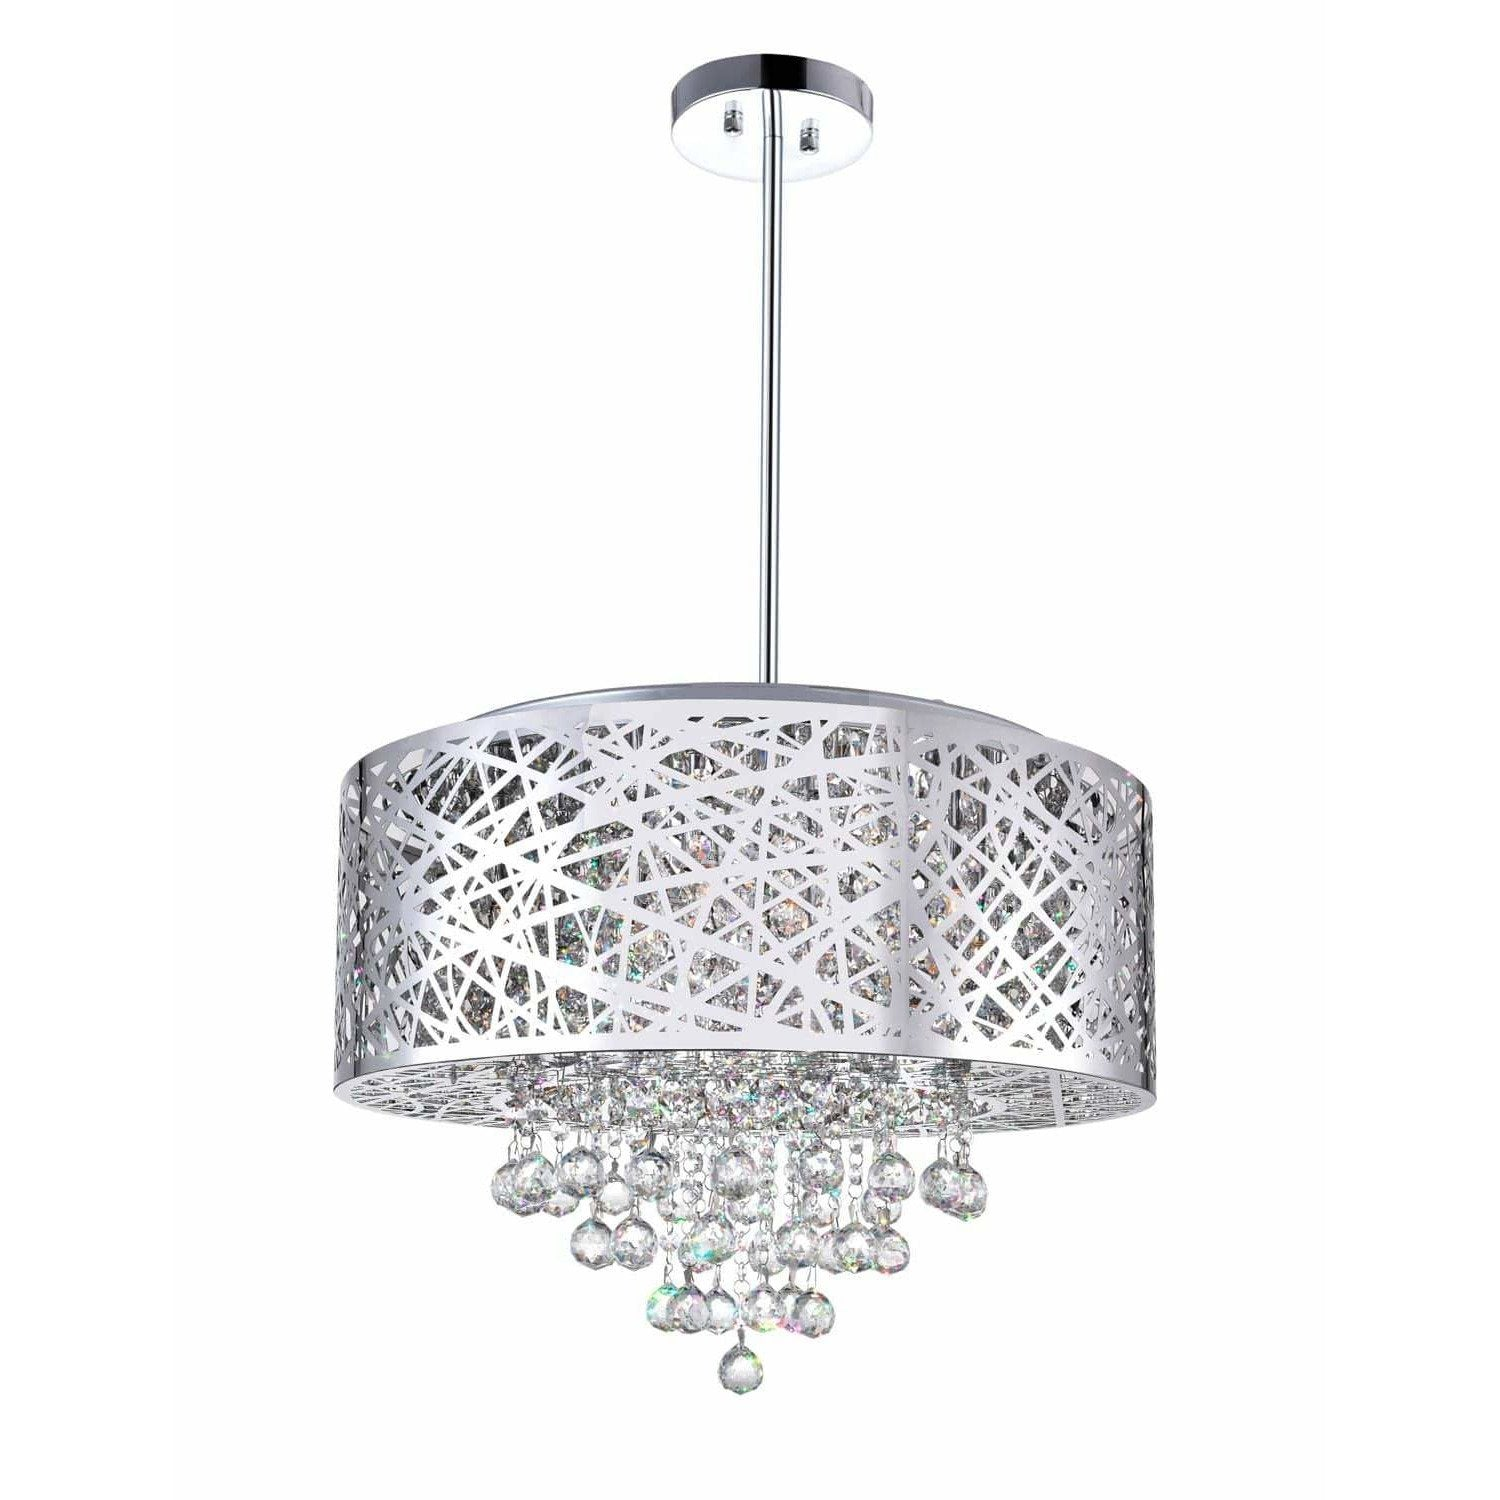 CWI Lighting Chandeliers Chrome / K9 Clear Eternity 9 Light Drum Shade Chandelier with Chrome finish by CWI Lighting 5008P22ST-R